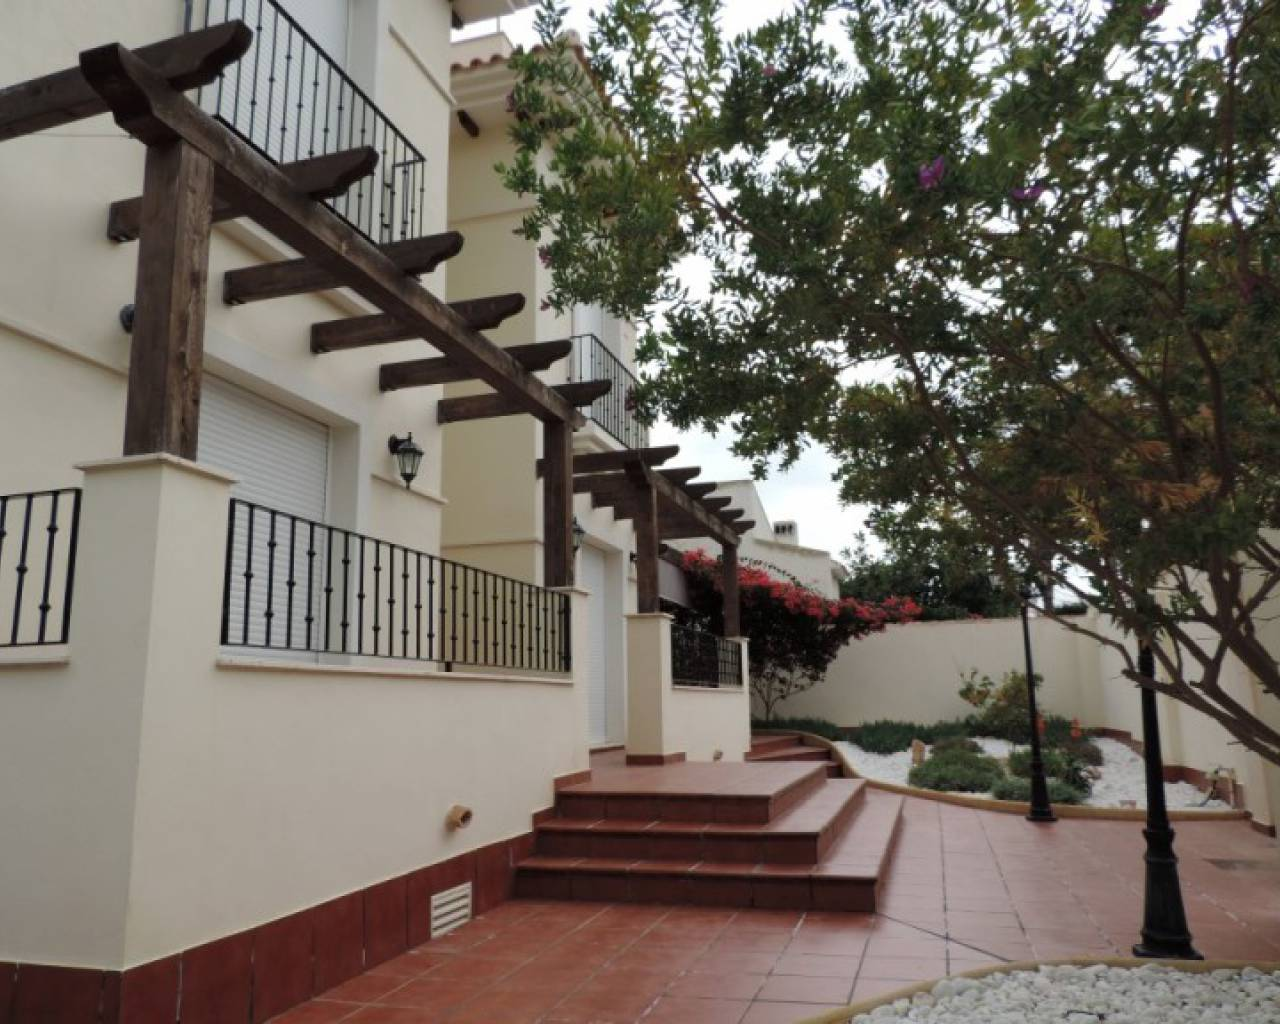 Sale - Detached Villa - Orihuela Costa - Cabo Roig